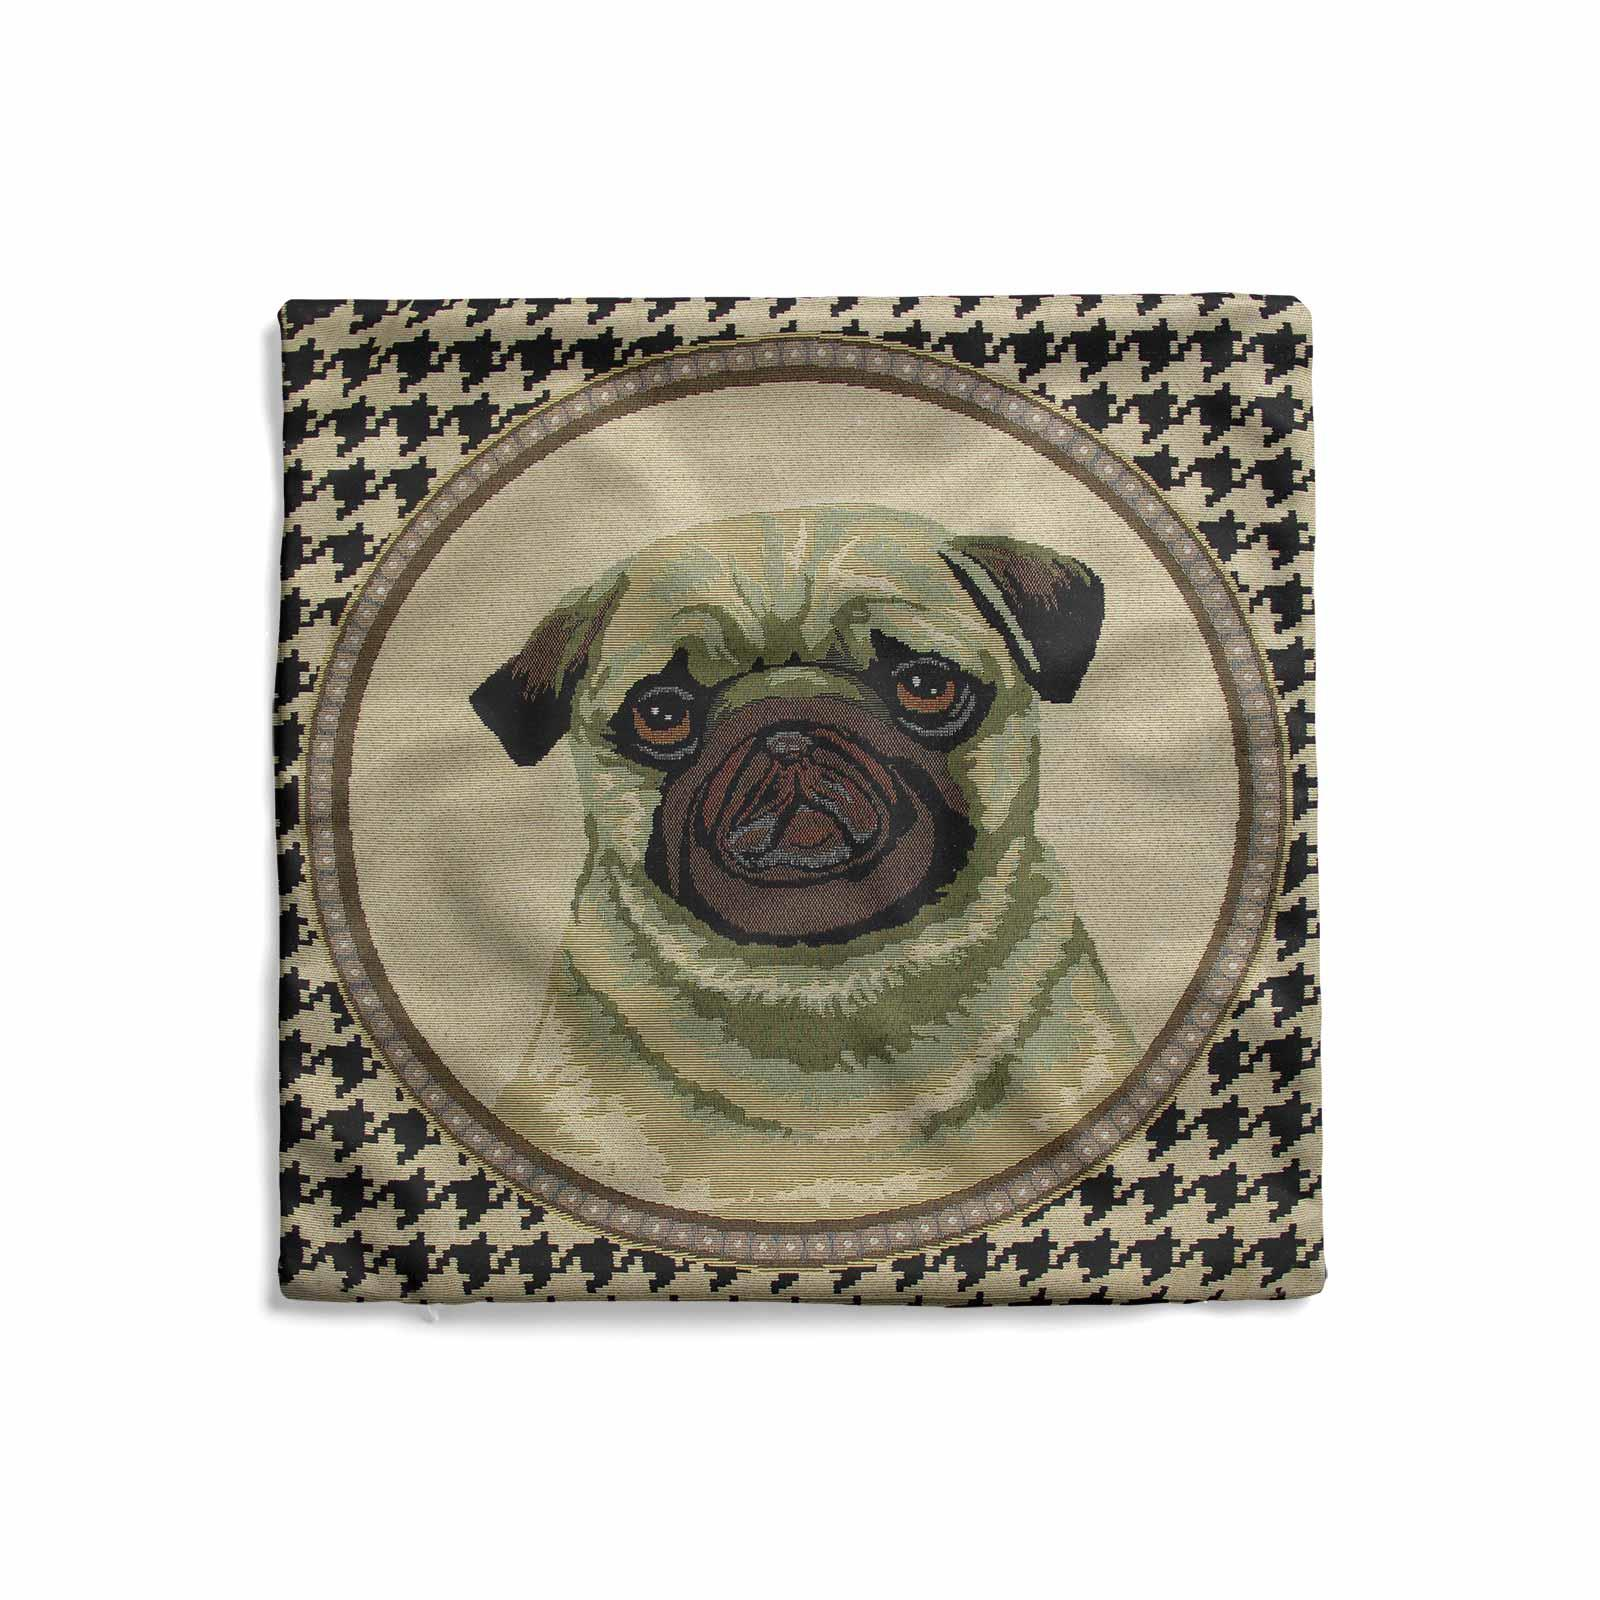 Tapestry-Cushion-Covers-Vintage-Pillow-Cover-Collection-18-034-45cm-Filled-Cushions thumbnail 129